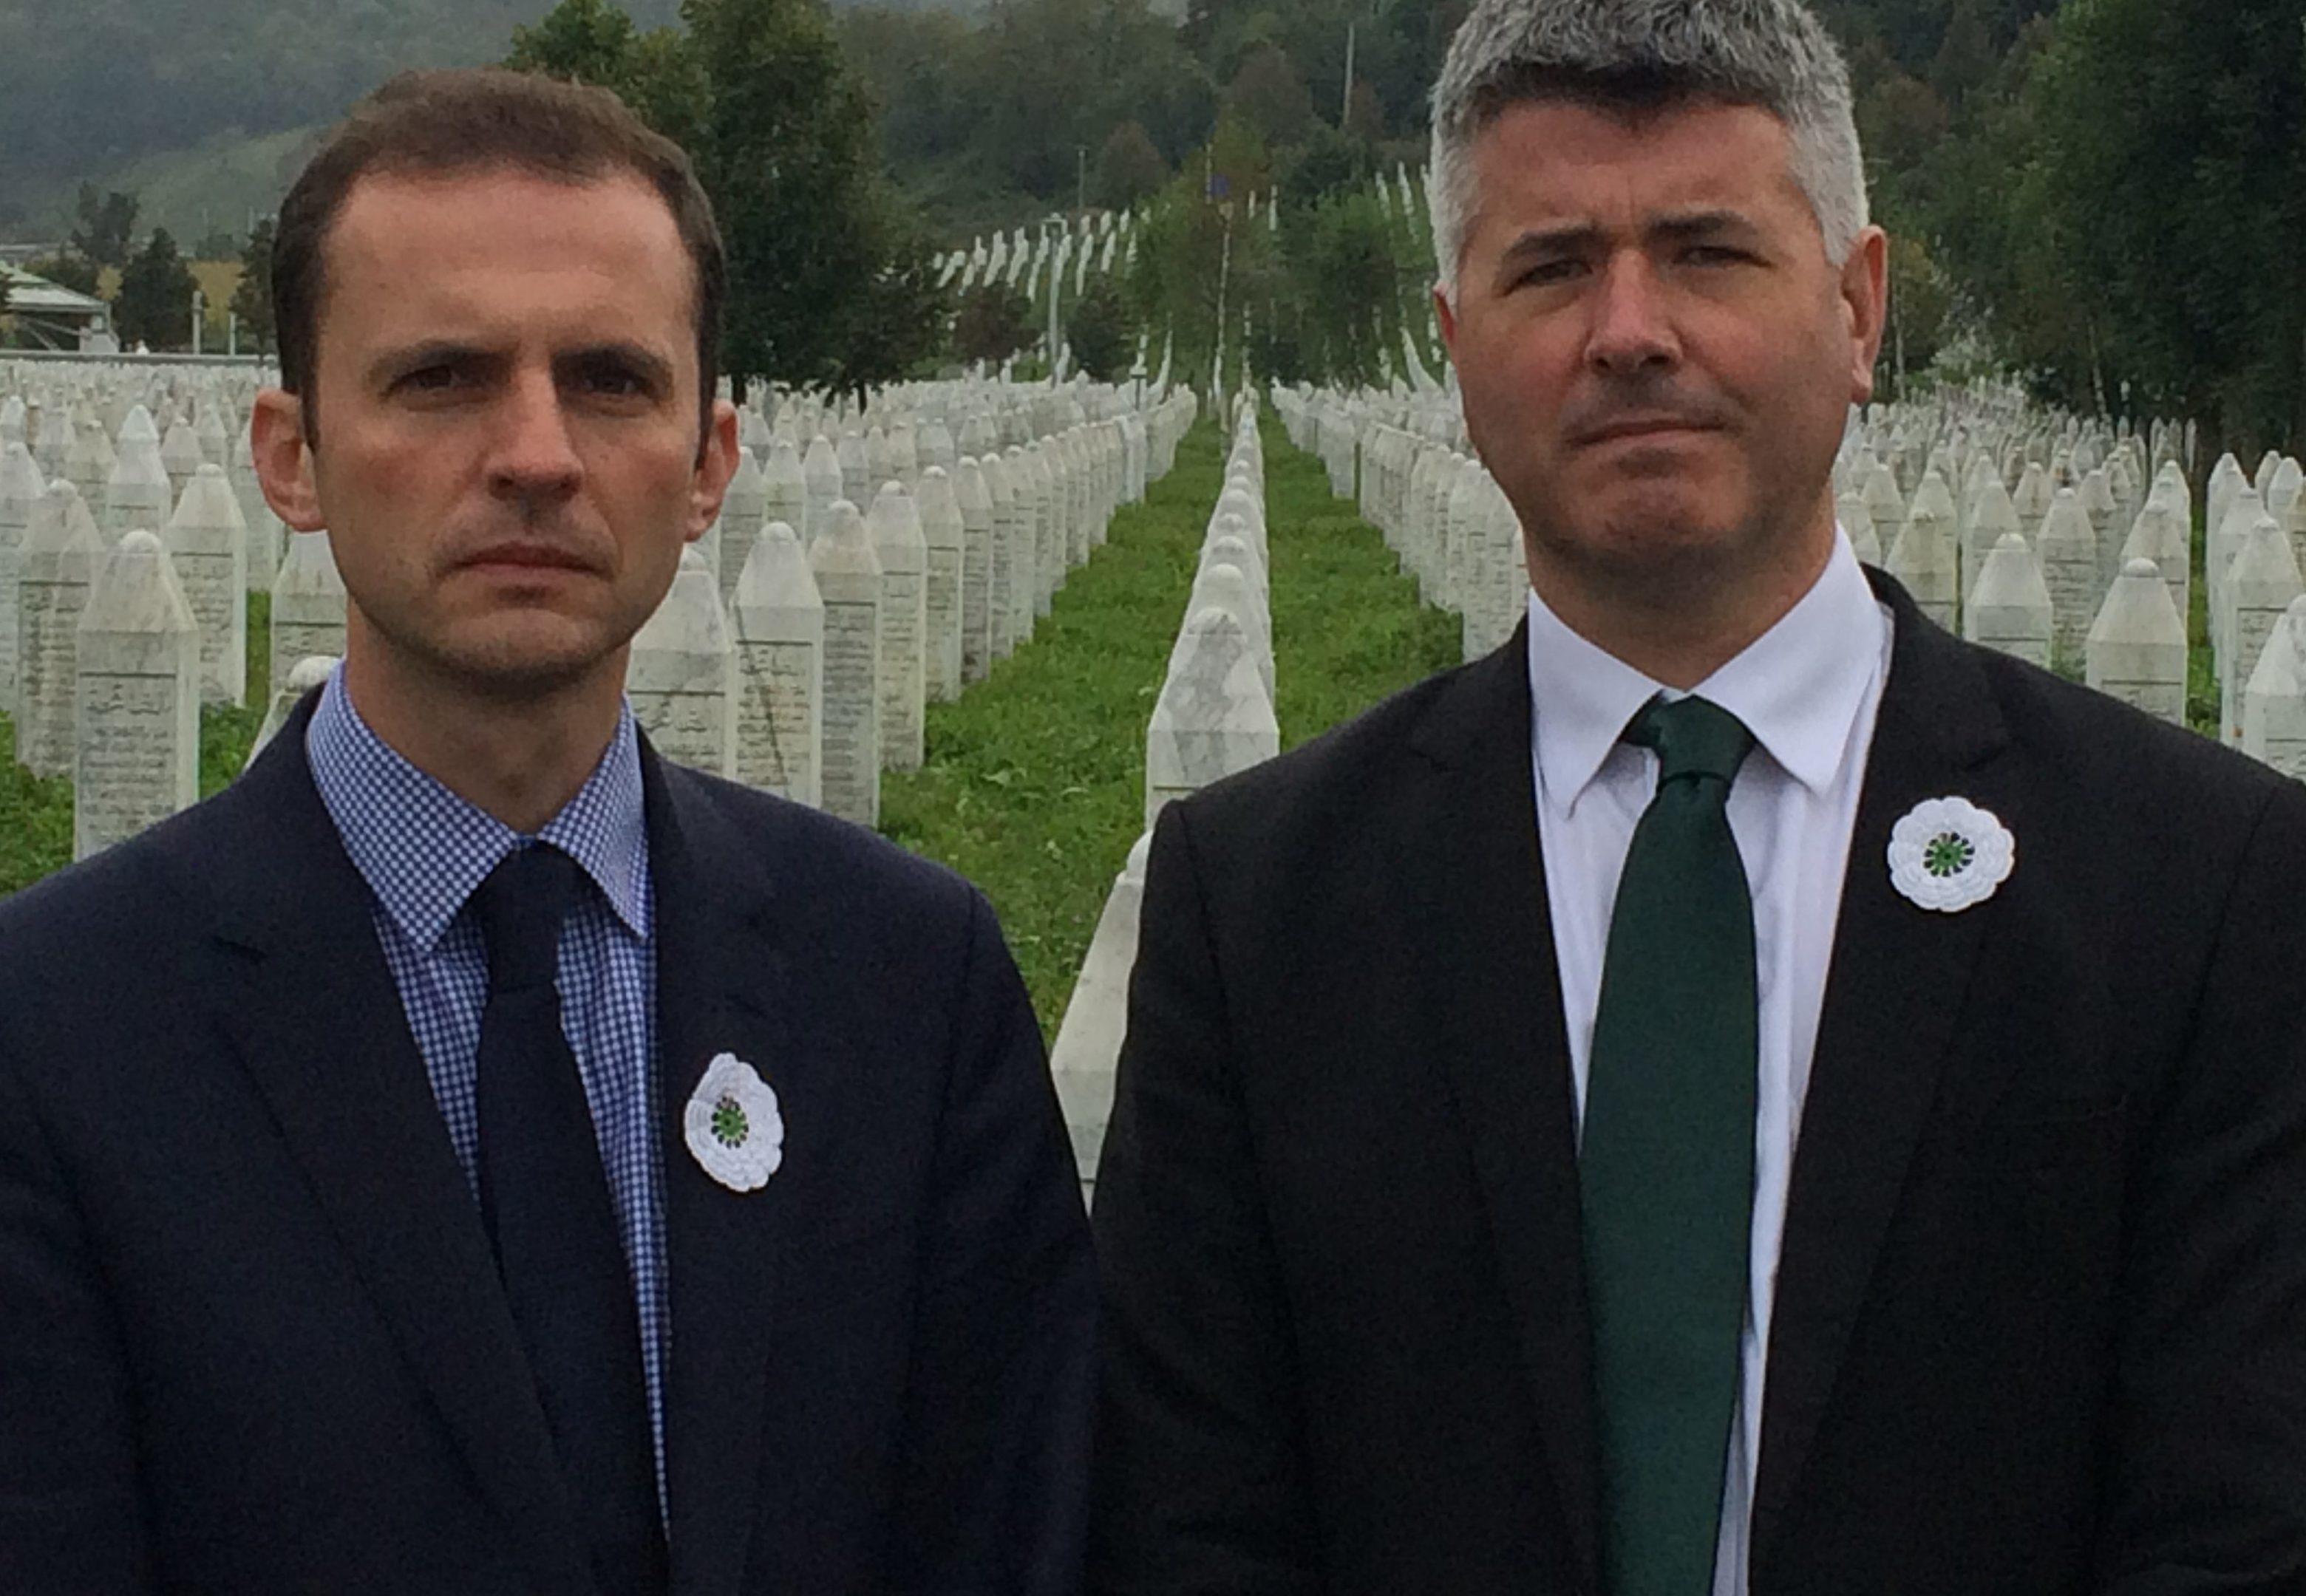 North East Fife MP Stephen Gethins and David Hamilton during a visit to one of the war cemeteries in Bosnia